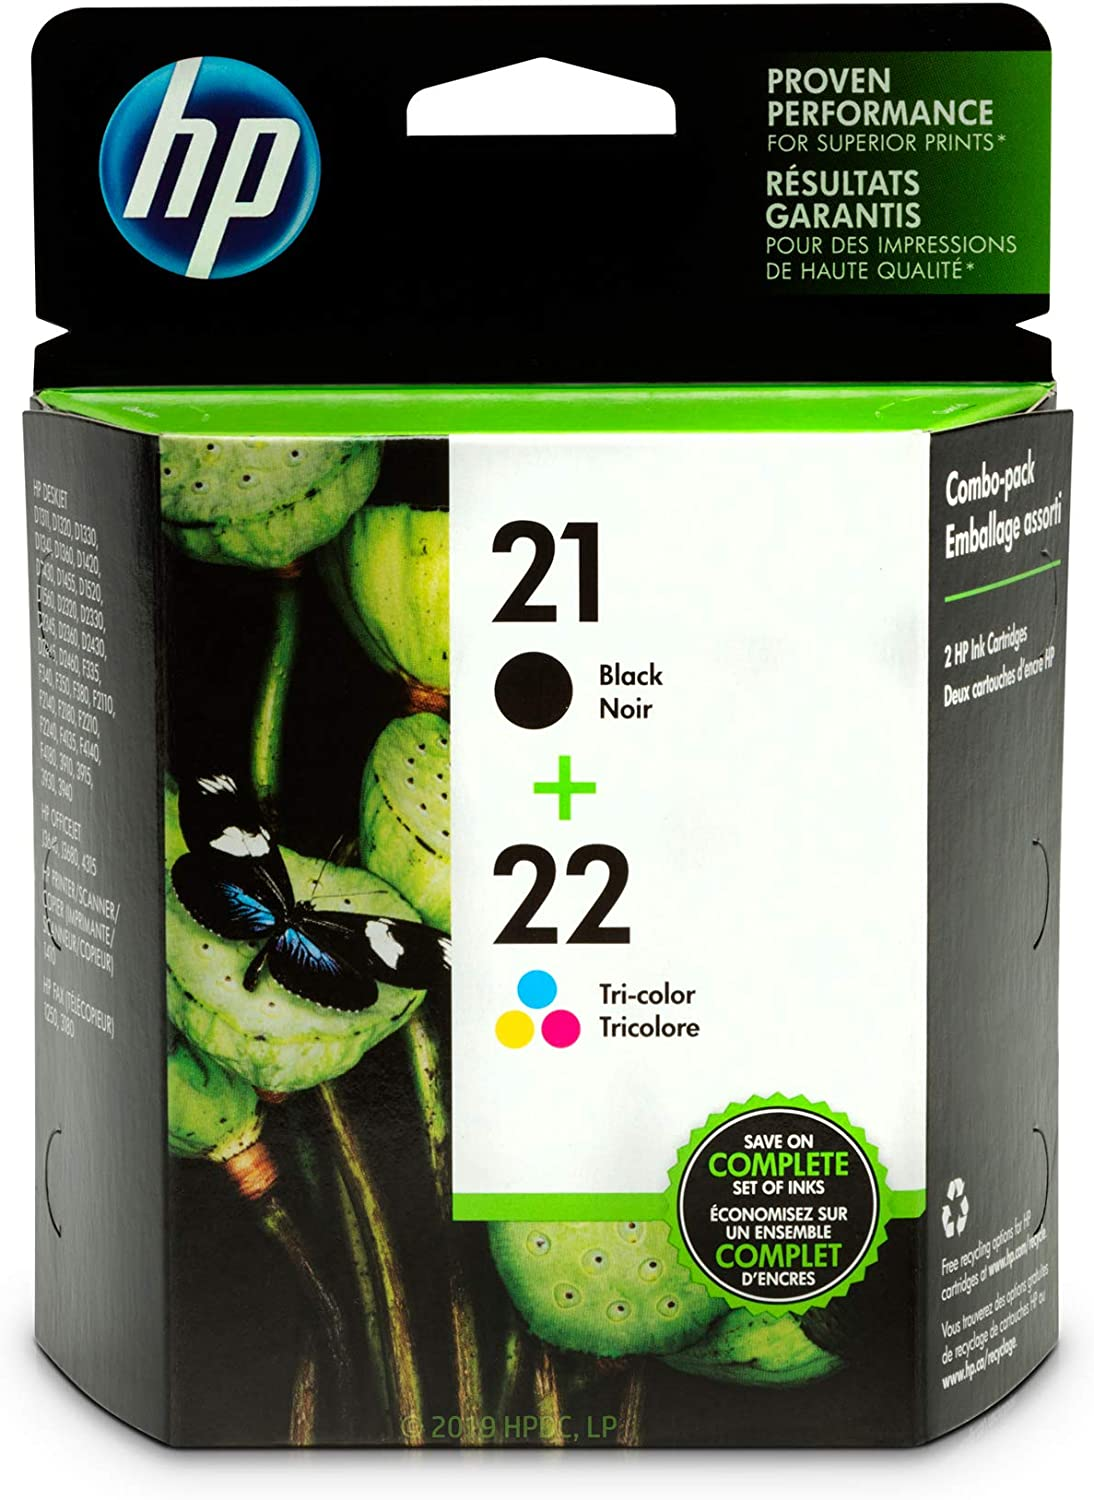 HP 21 | 2 Ink Cartridges | Black, Tri-color | C9351AN, C9352AN, toner